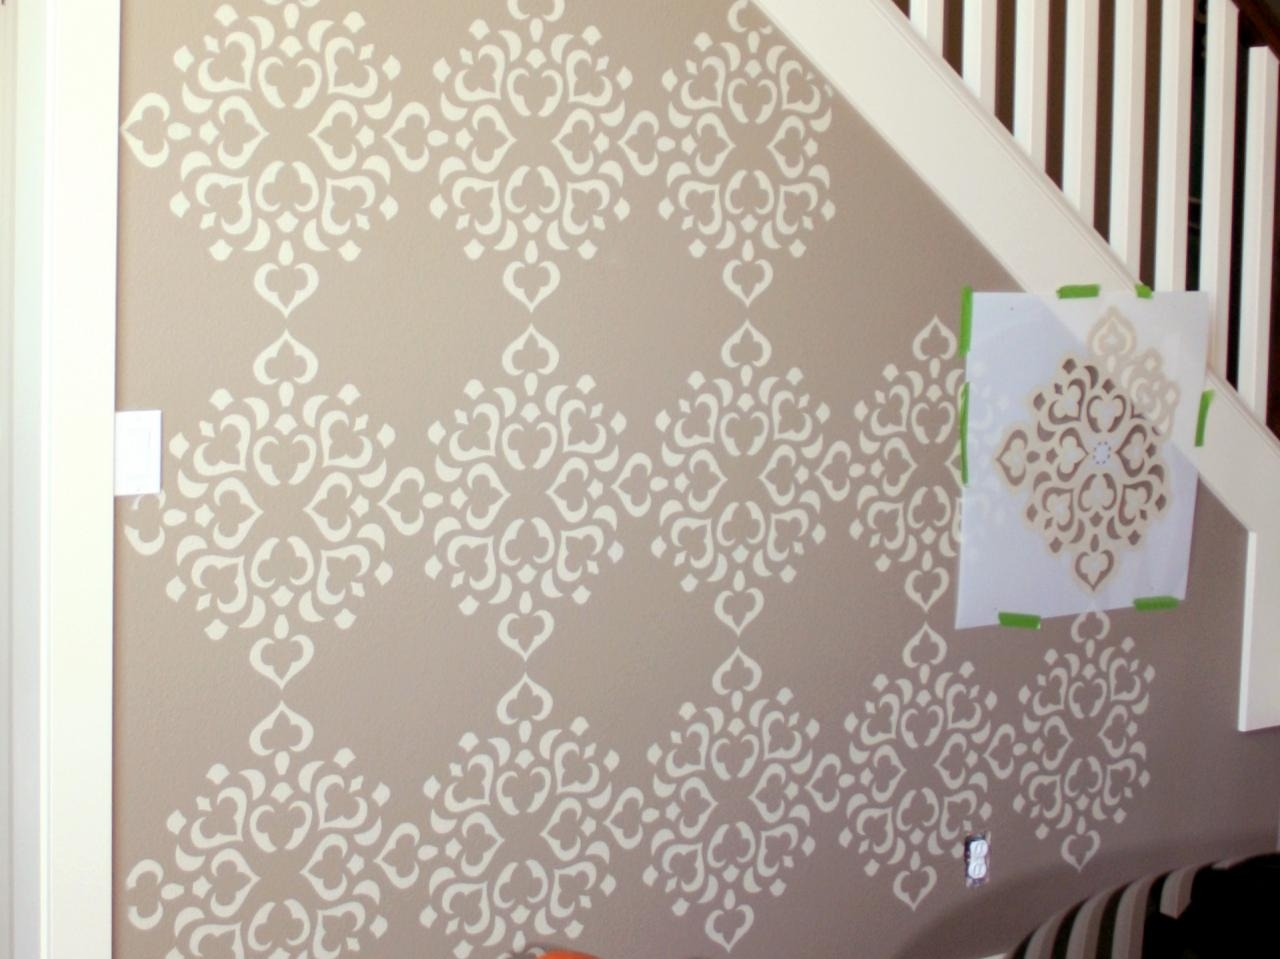 Give Your Home A Dramatic Look With The Help Of Wall Stencils Within Most Up To Date Stencil Wall Art (Gallery 20 of 20)